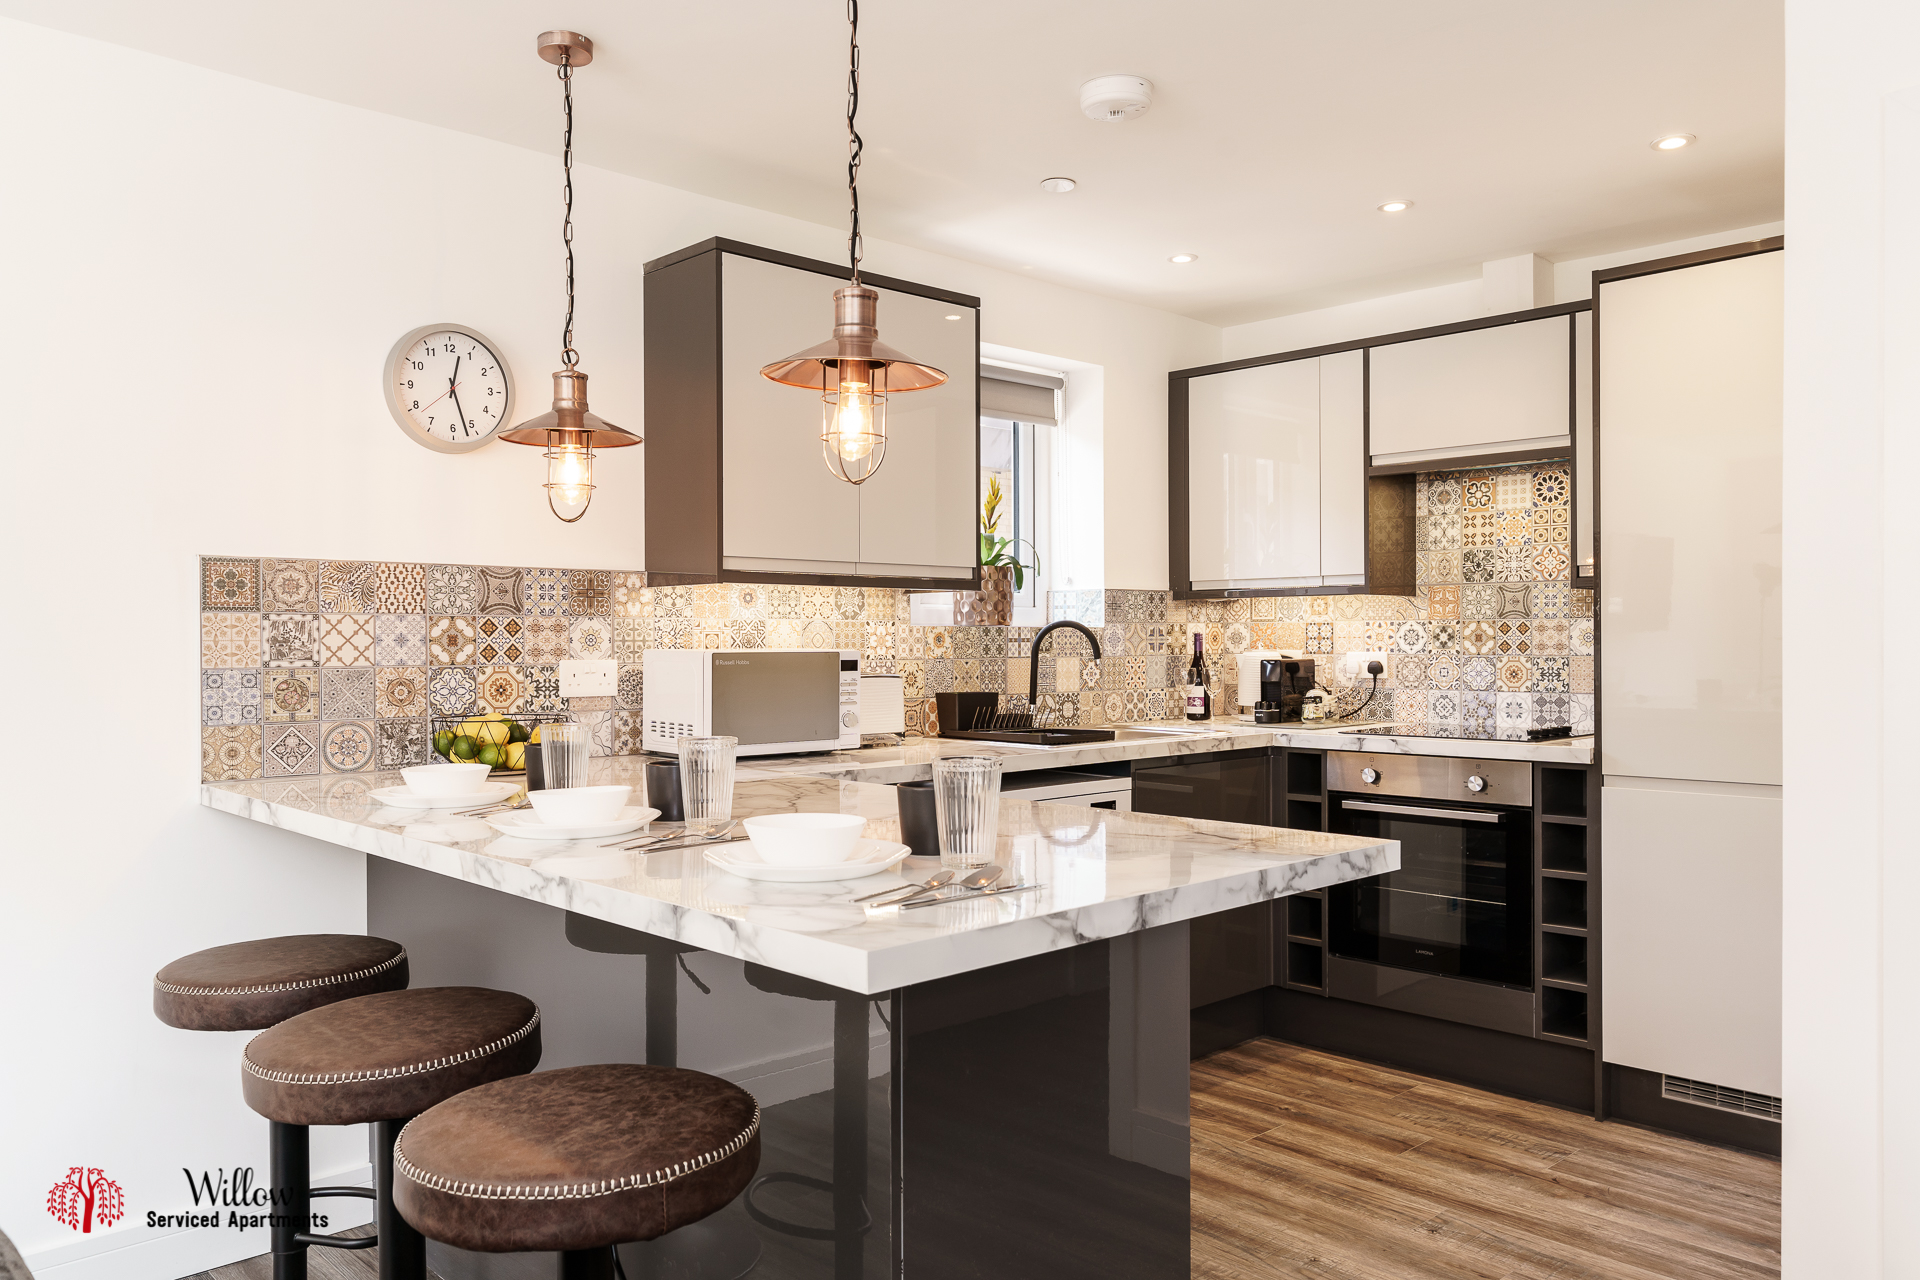 © South Wales Property Photography